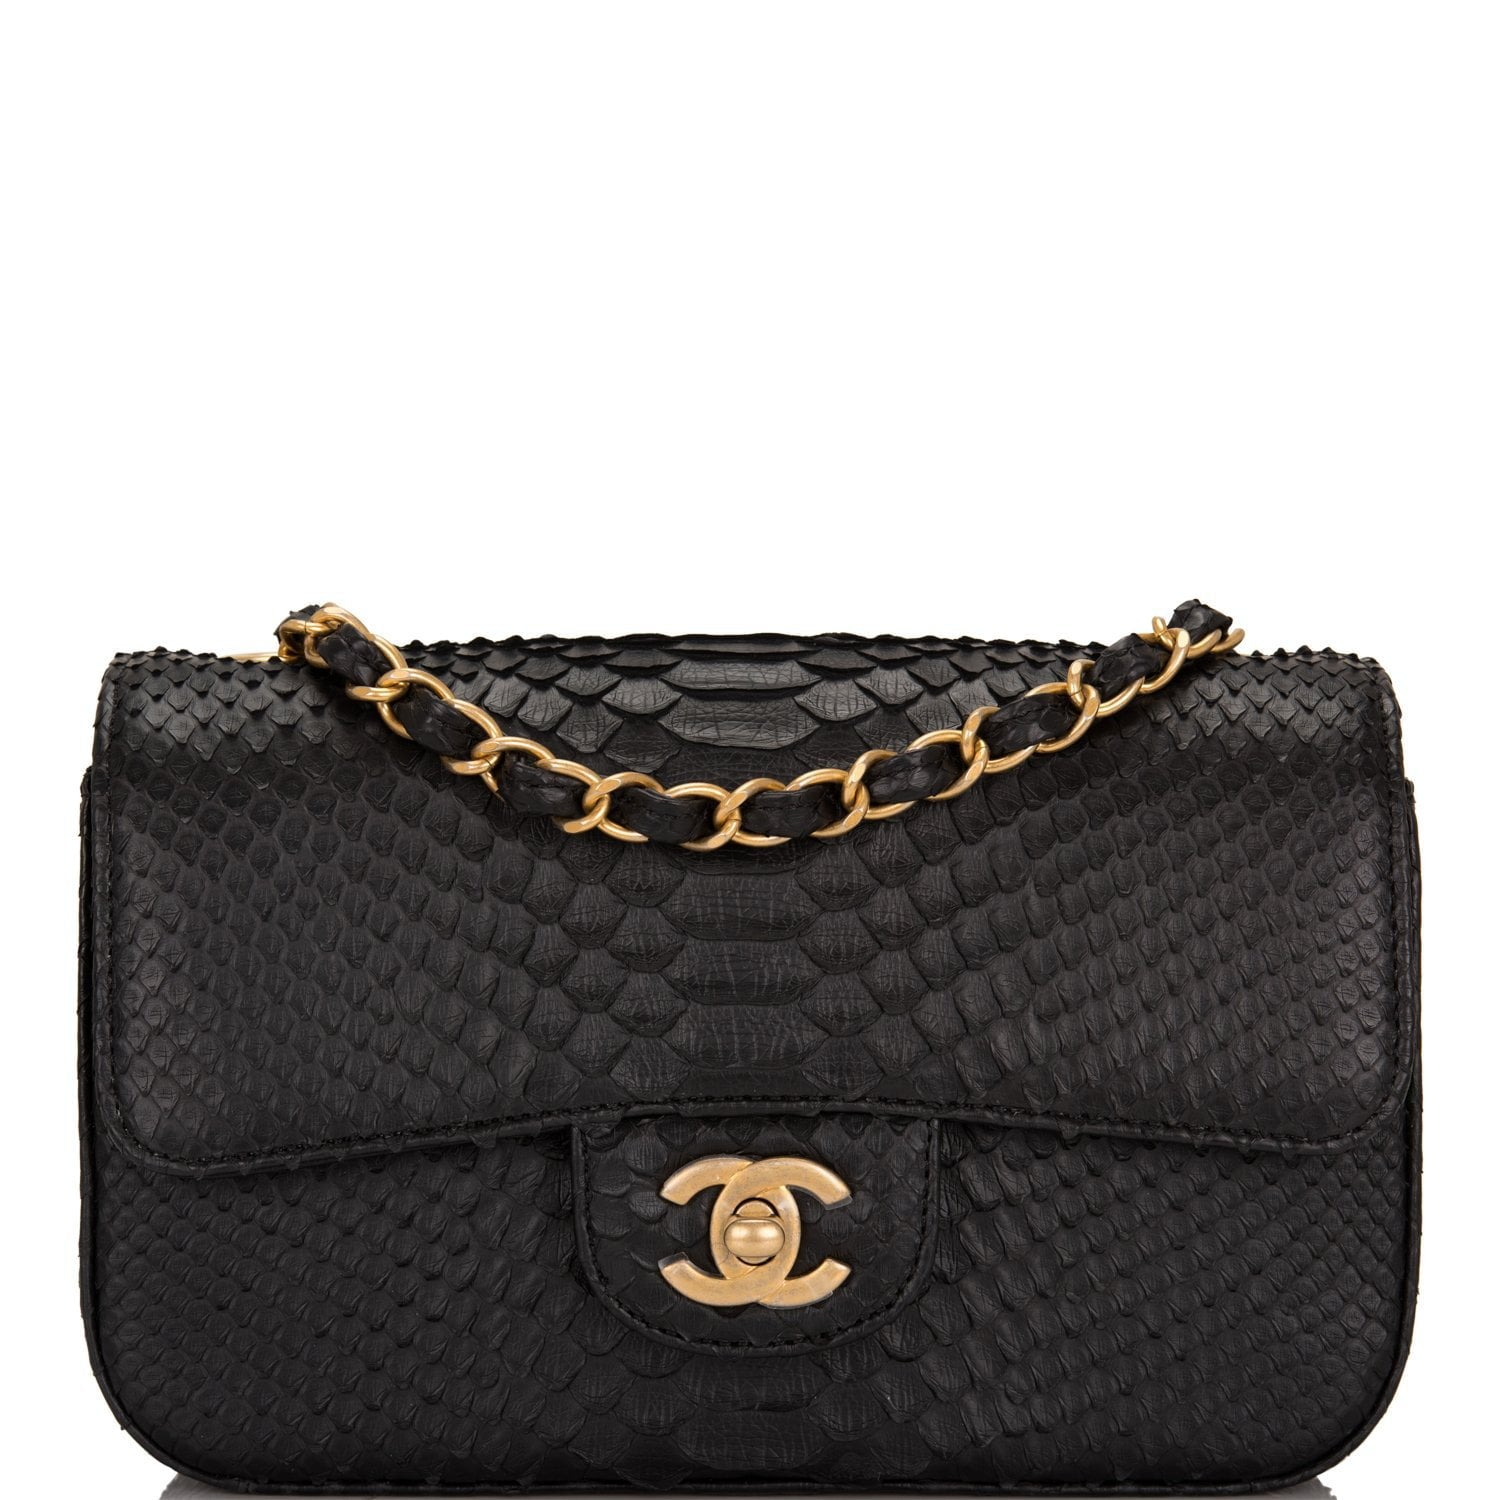 Chanel Black Python Rectangular Mini Classic Flap Bag